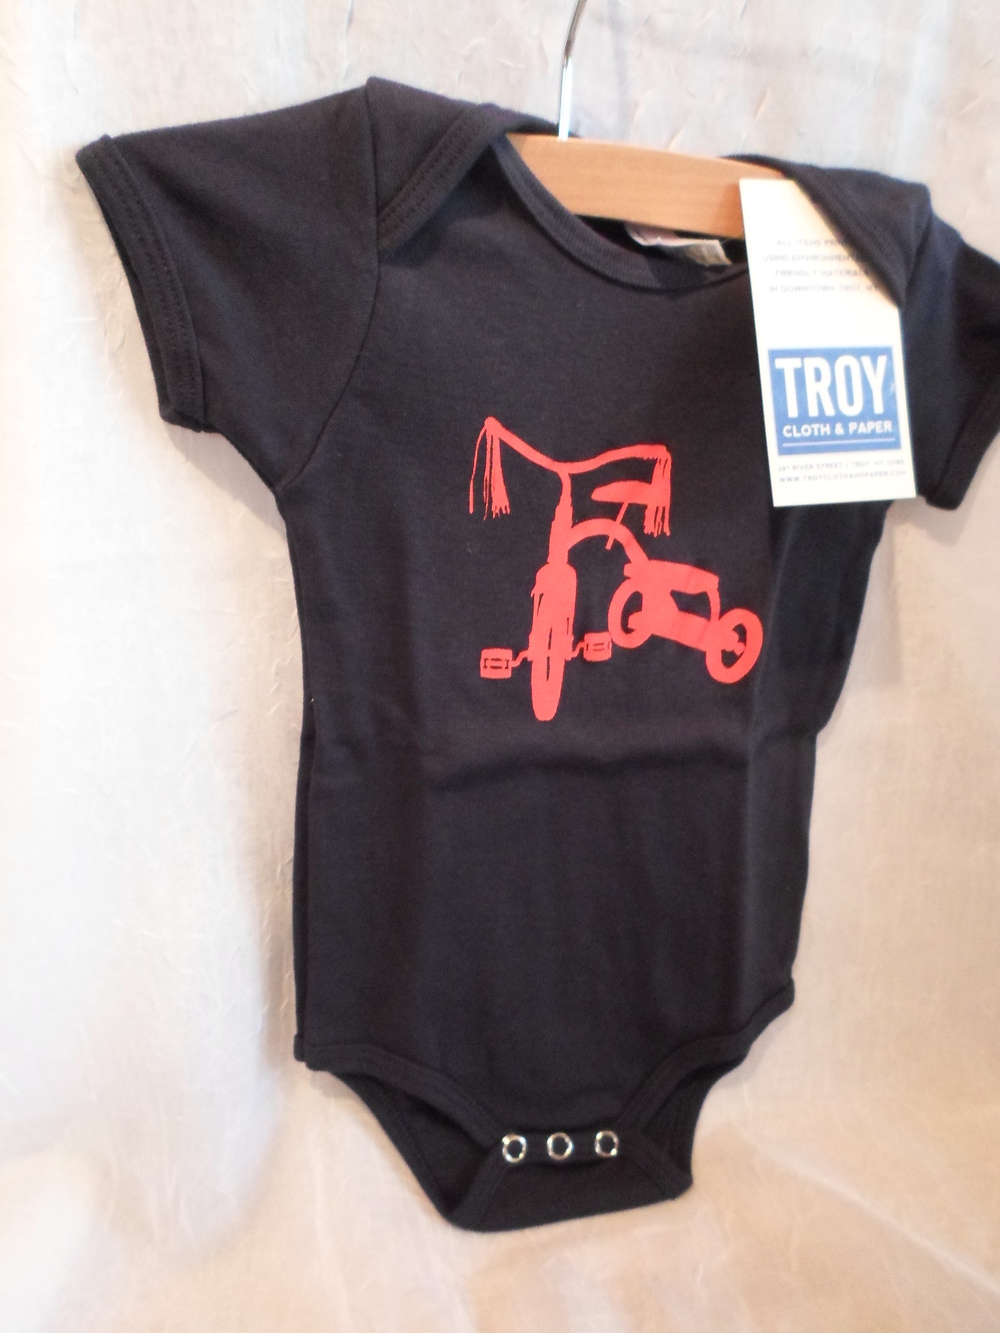 Troy Cloth & Paper Red Tricycle Bodysuit 3-6m $16.00 Wants 1